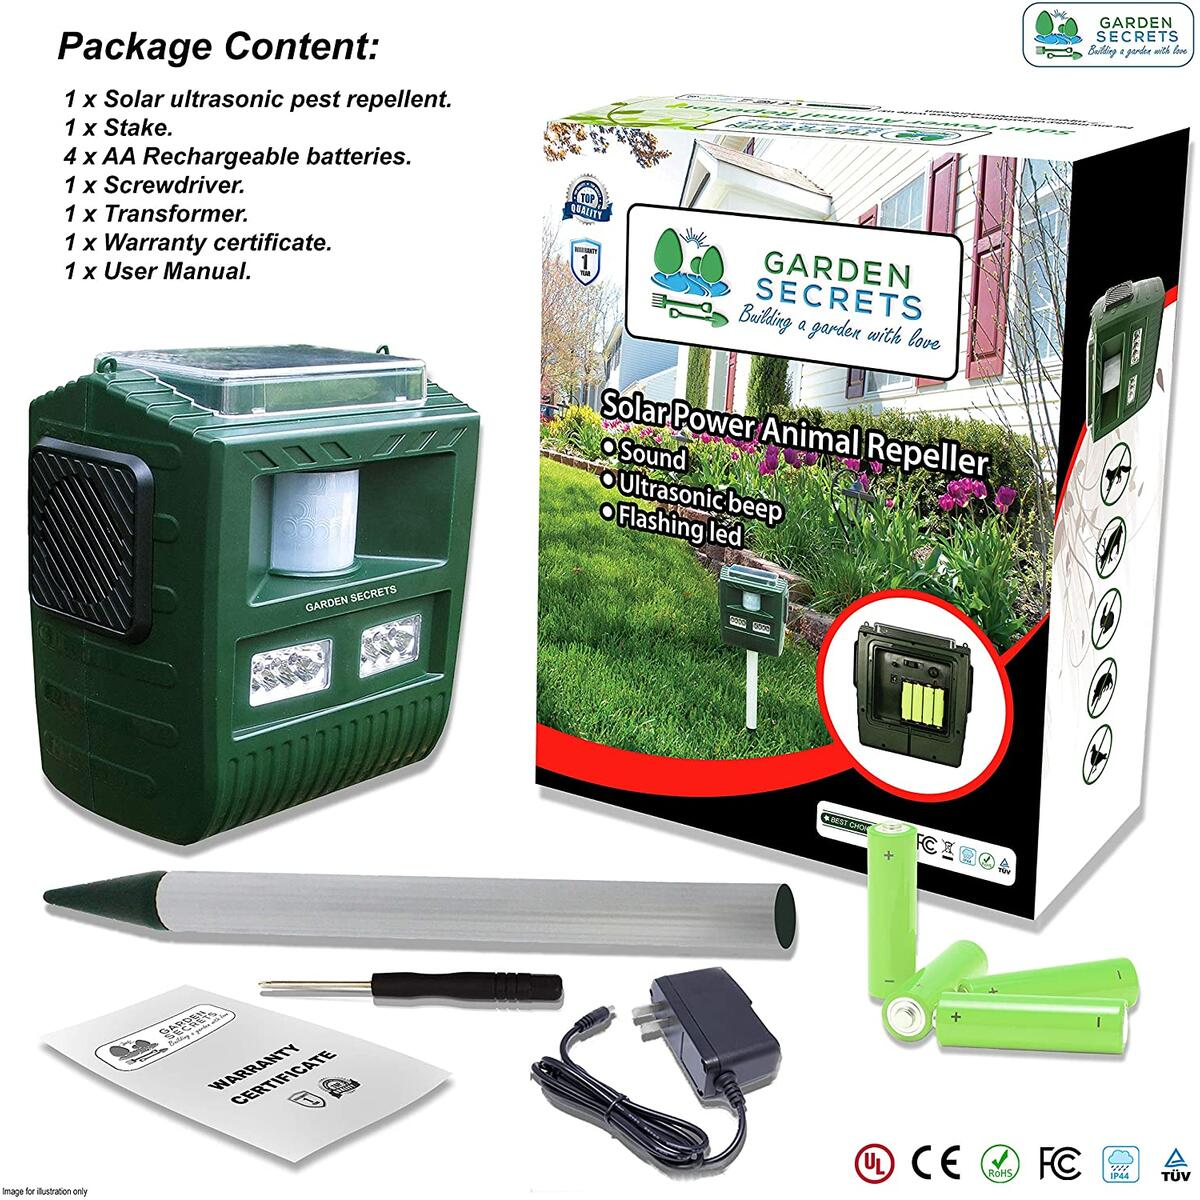 GARDEN SECRETS 3-in-1 Professional ULTRASONIC ANIMAL REPELLENT, Deer Raccoon Rabbit Skunk Possum Bear etc. deterrent, Keep the pests away from your property within 2-4 weeks, whole year full warranty!